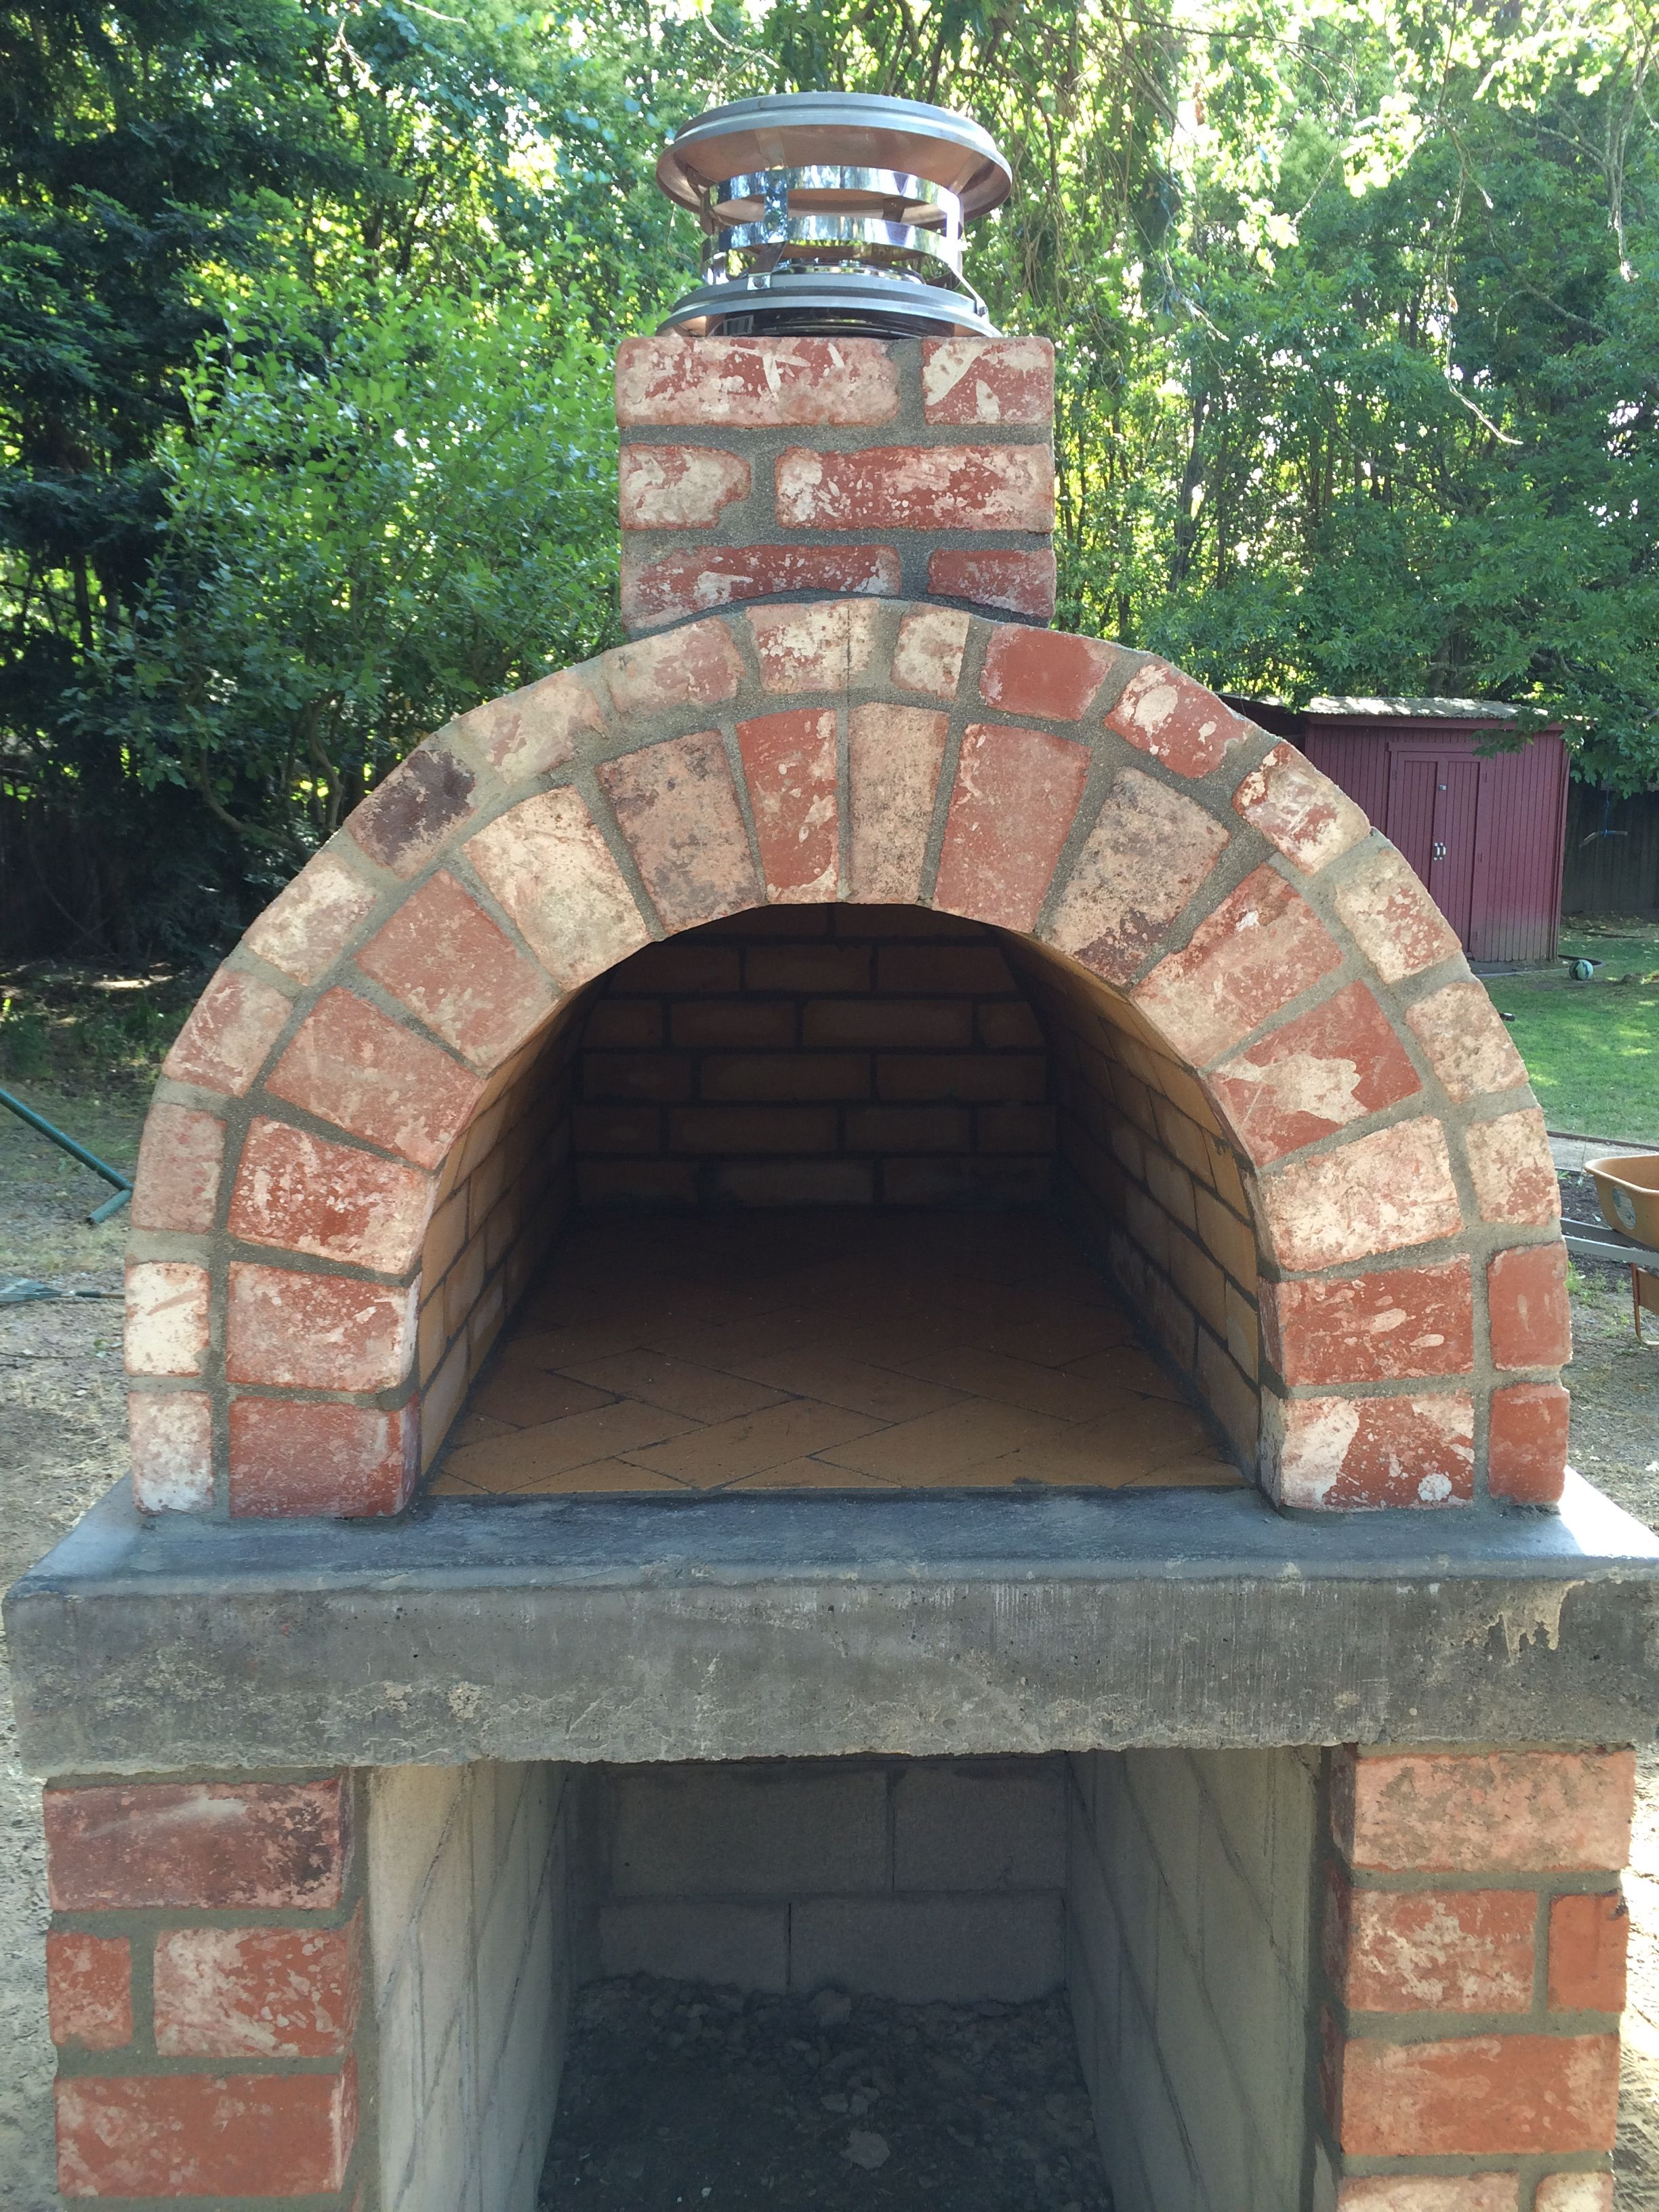 A Classic Brick Wood Oven An Excellent Example Of A Wood